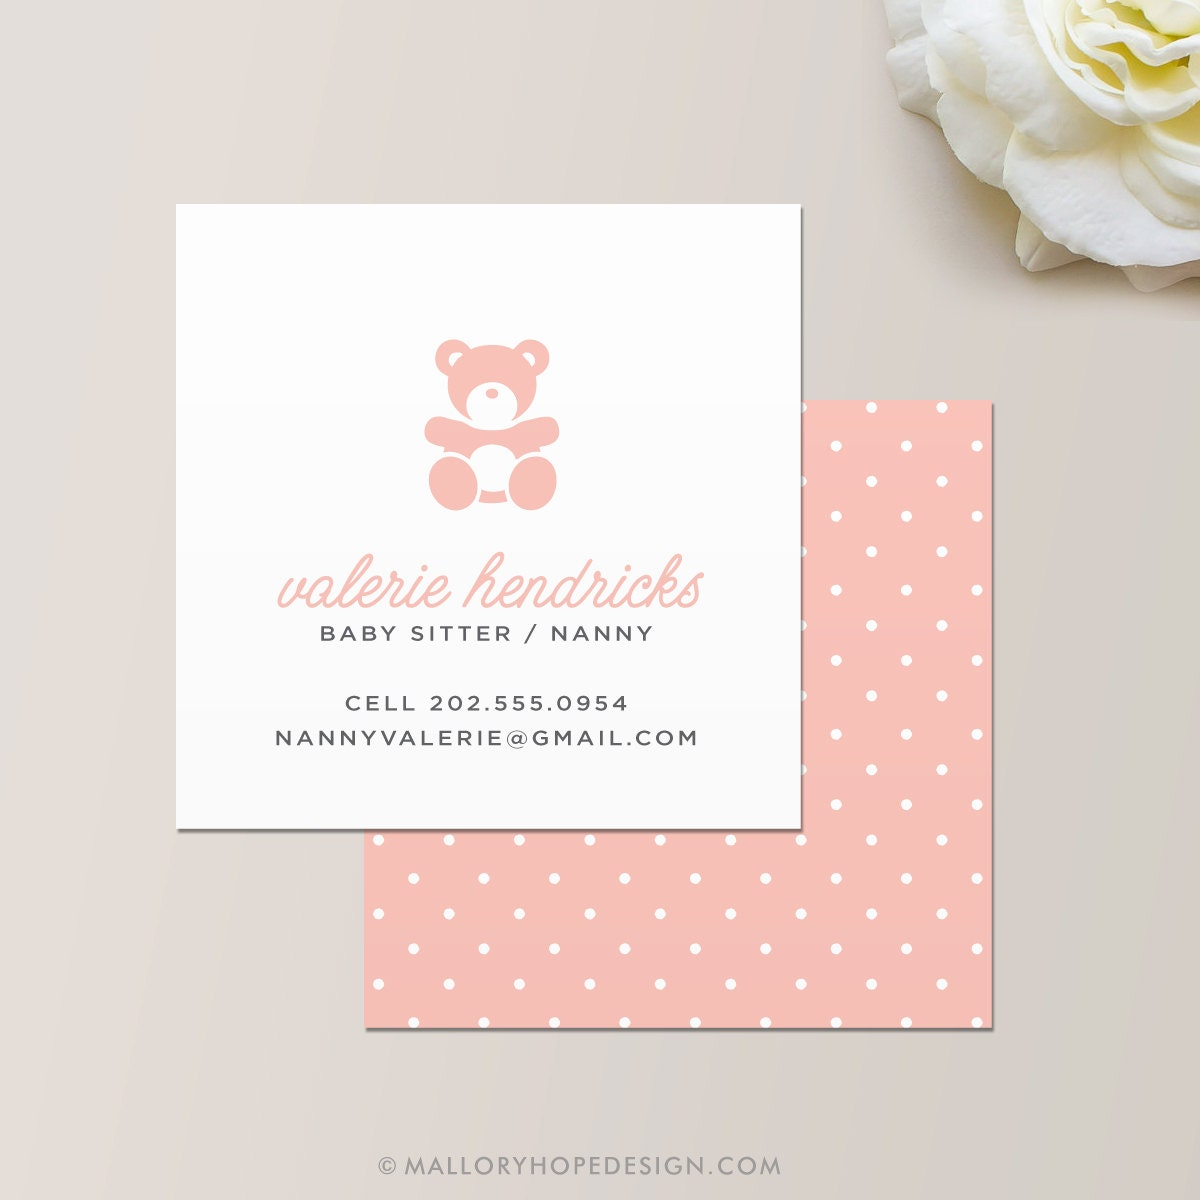 Nanny or babysitter square business card calling card for Custom square business cards